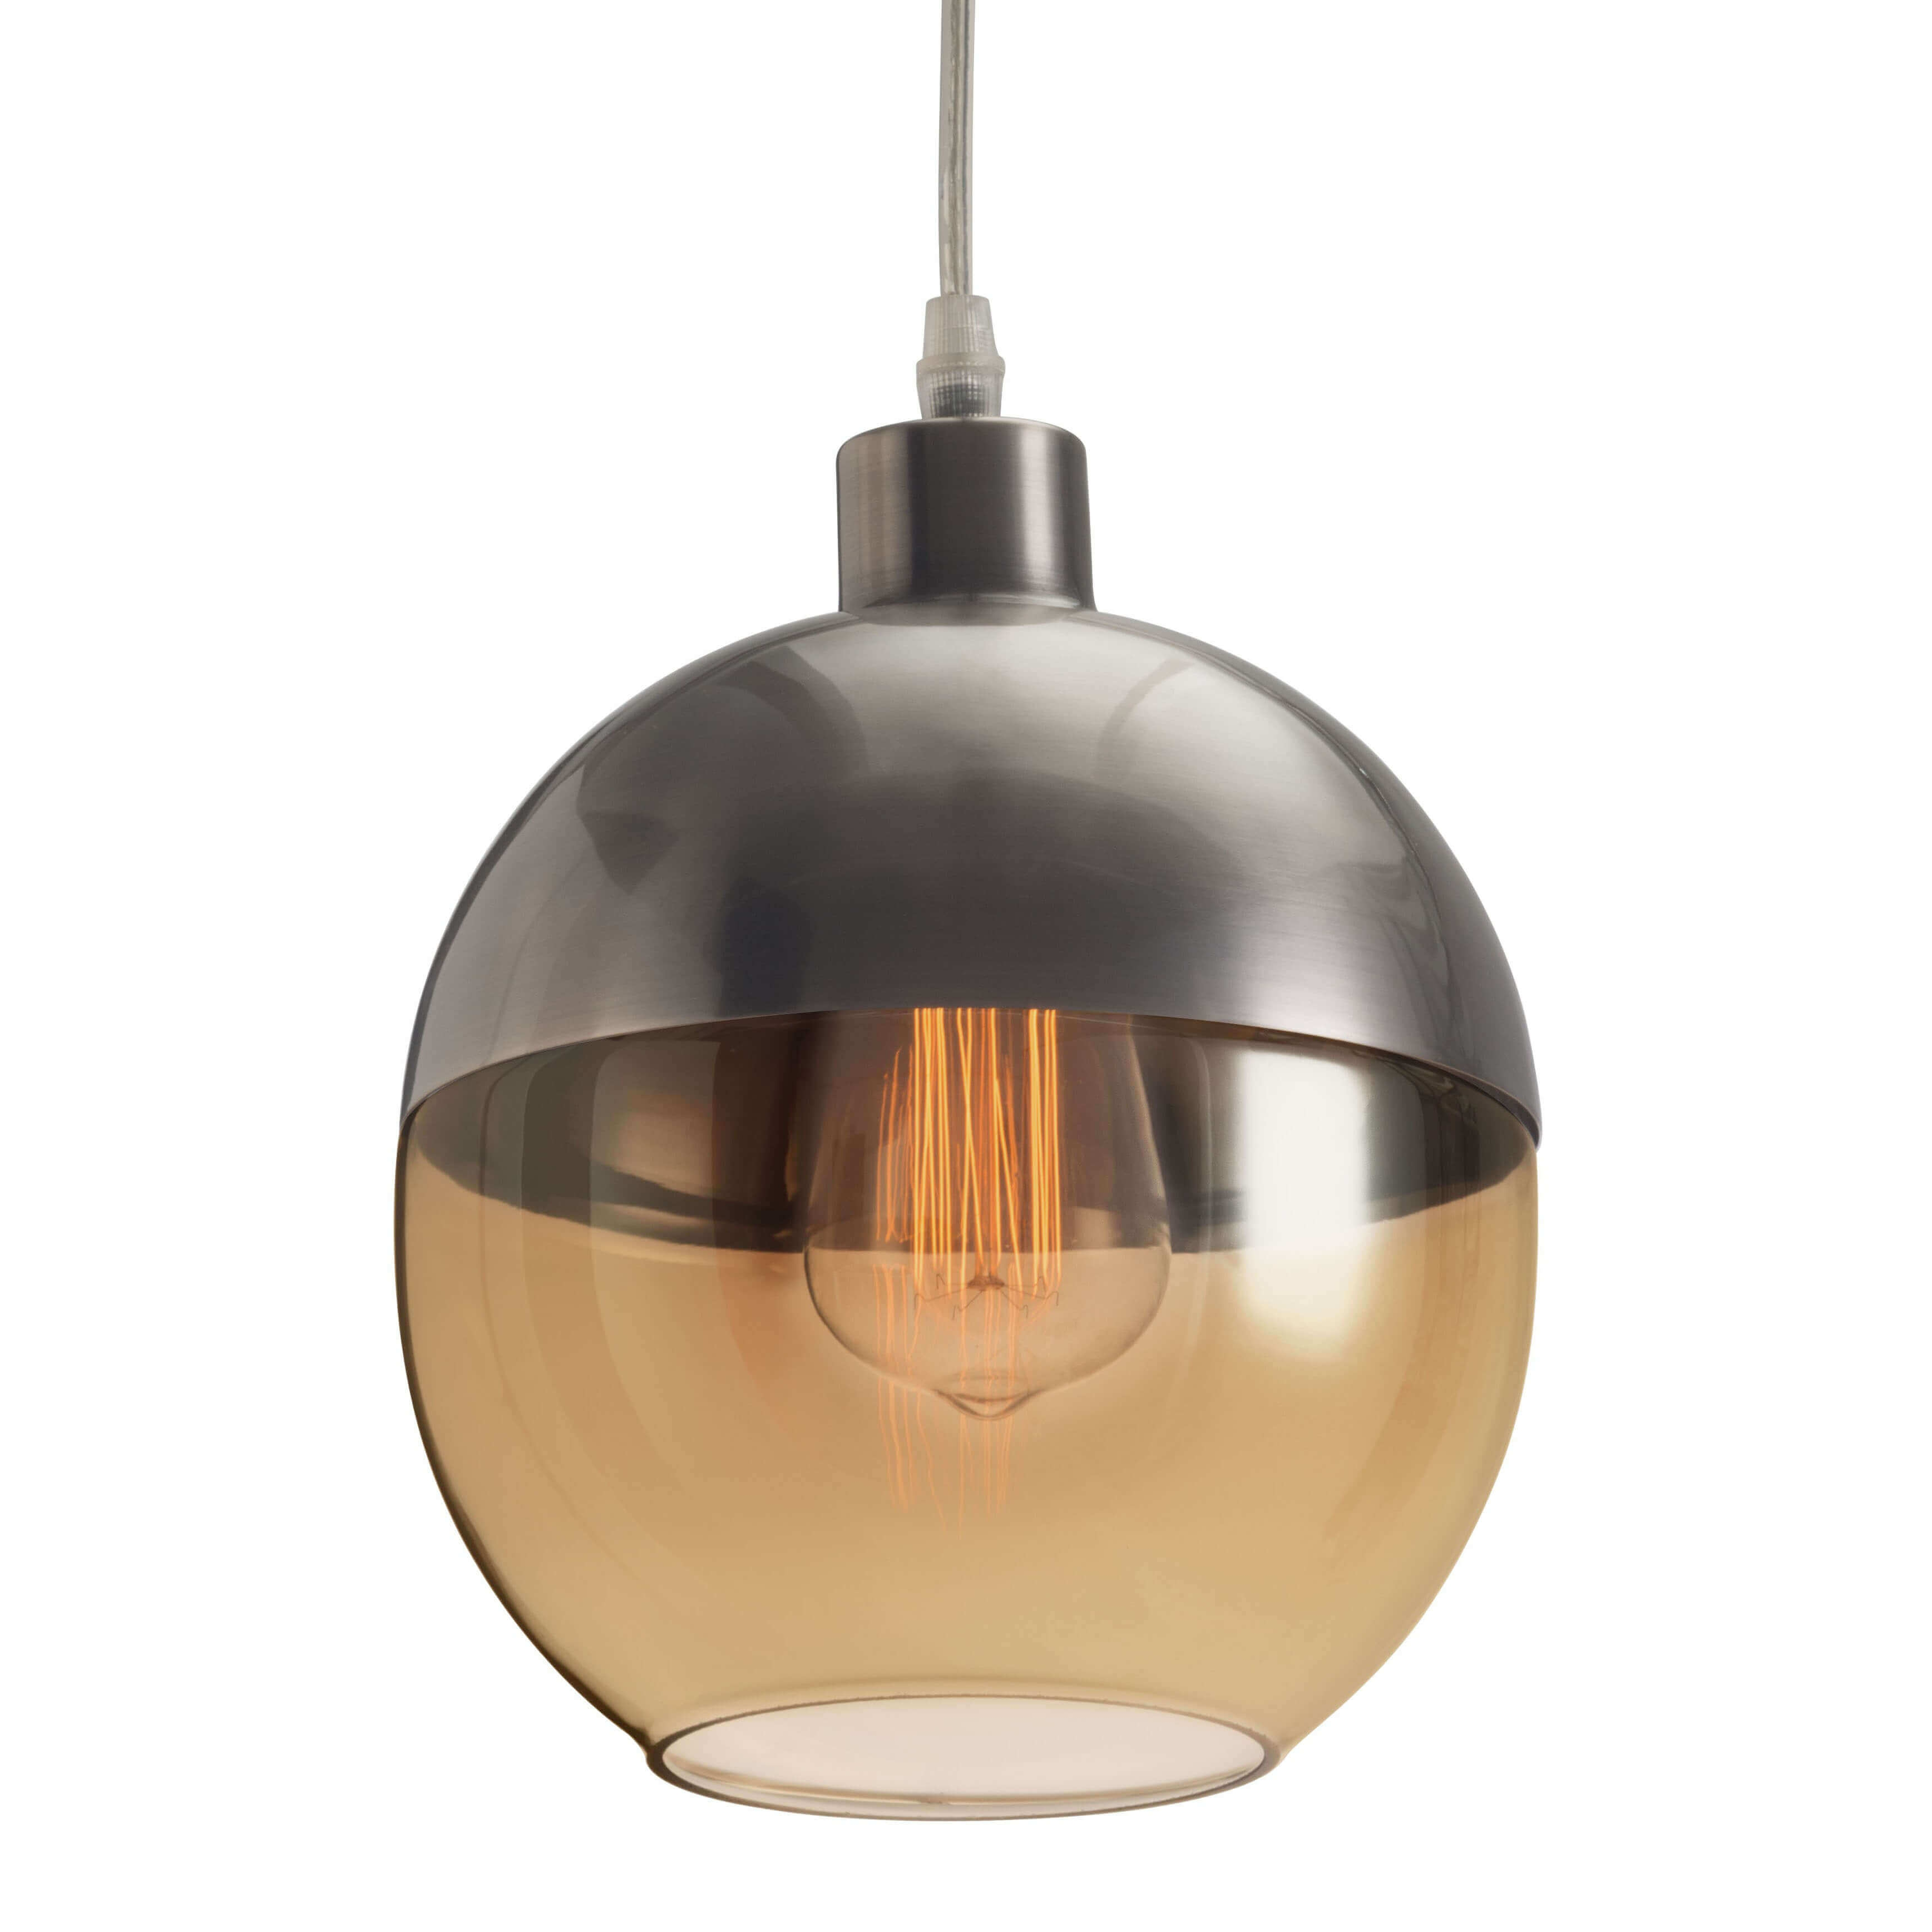 creative small ideas pendant unique lights minimalist cover uk contemporary home chain outdoor for light roundshaped clear lighting awesome sconce style fixtures hanging great chandelier bar ceiling depot amazing cage trendy bathroom charming seashore glass industrial